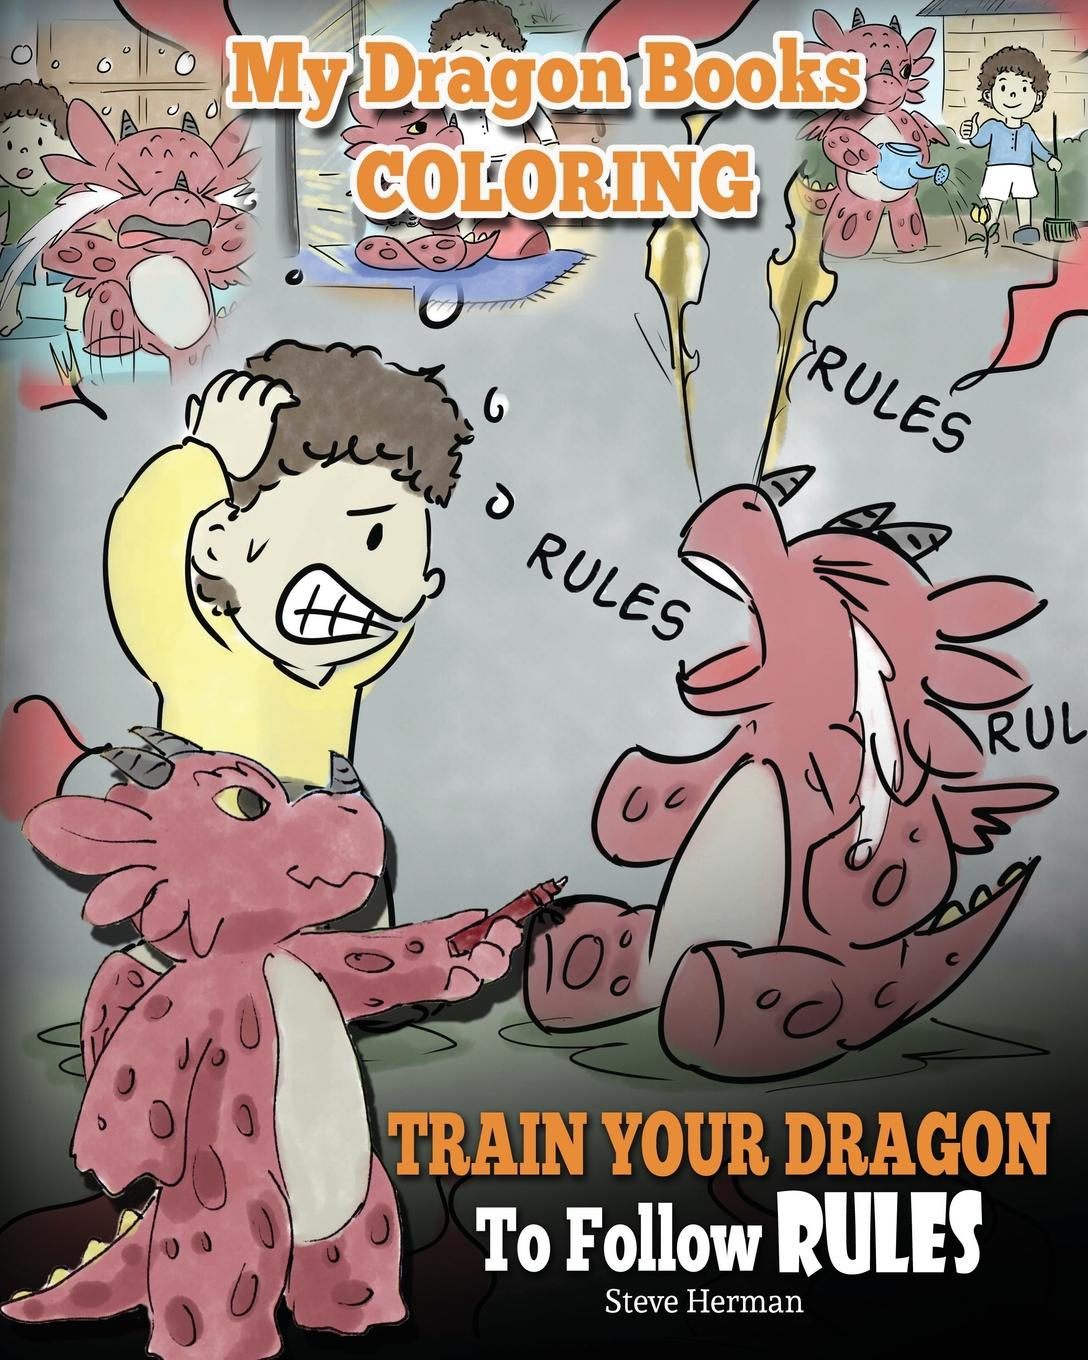 Steve Herman My Dragon Books Coloring - Train Your Dragon To Follow Rules. Children Coloring Activity Book With Fun, Cute, And Easy Dragon Coloring Pages. 20 ways to draw a dress and 44 other fabulous fashions and accessories coloring book for adult children 112 page